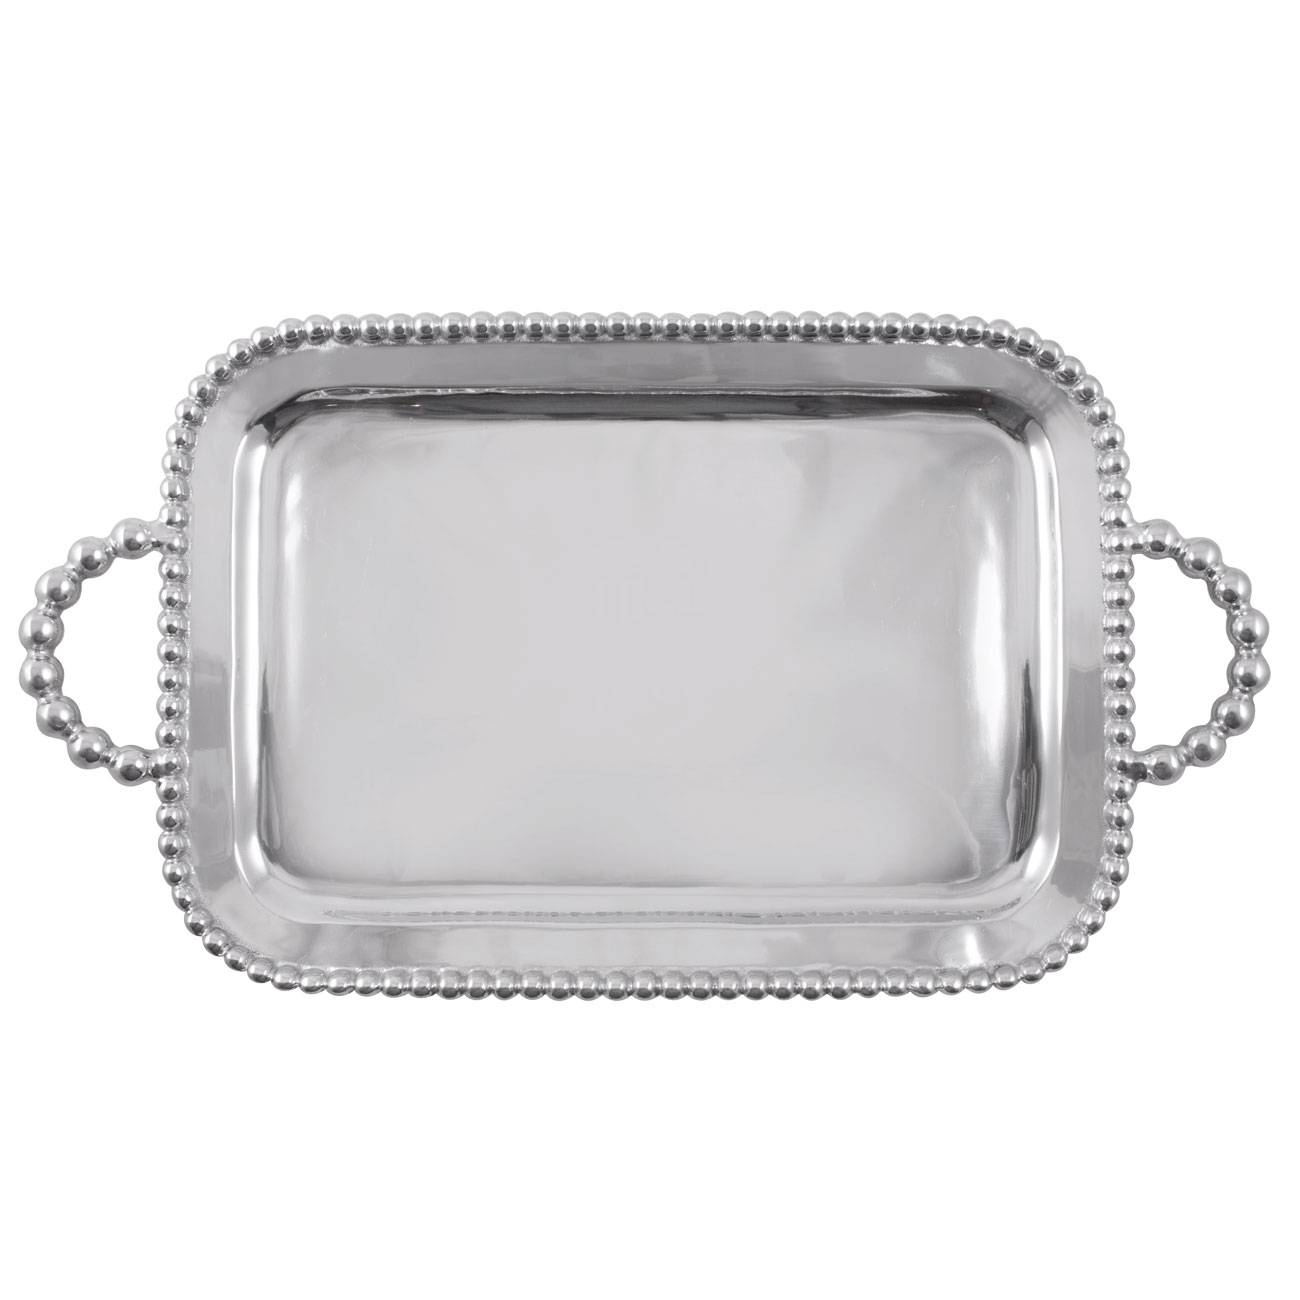 Mariposa String of Pearls Large Handled Service Tray